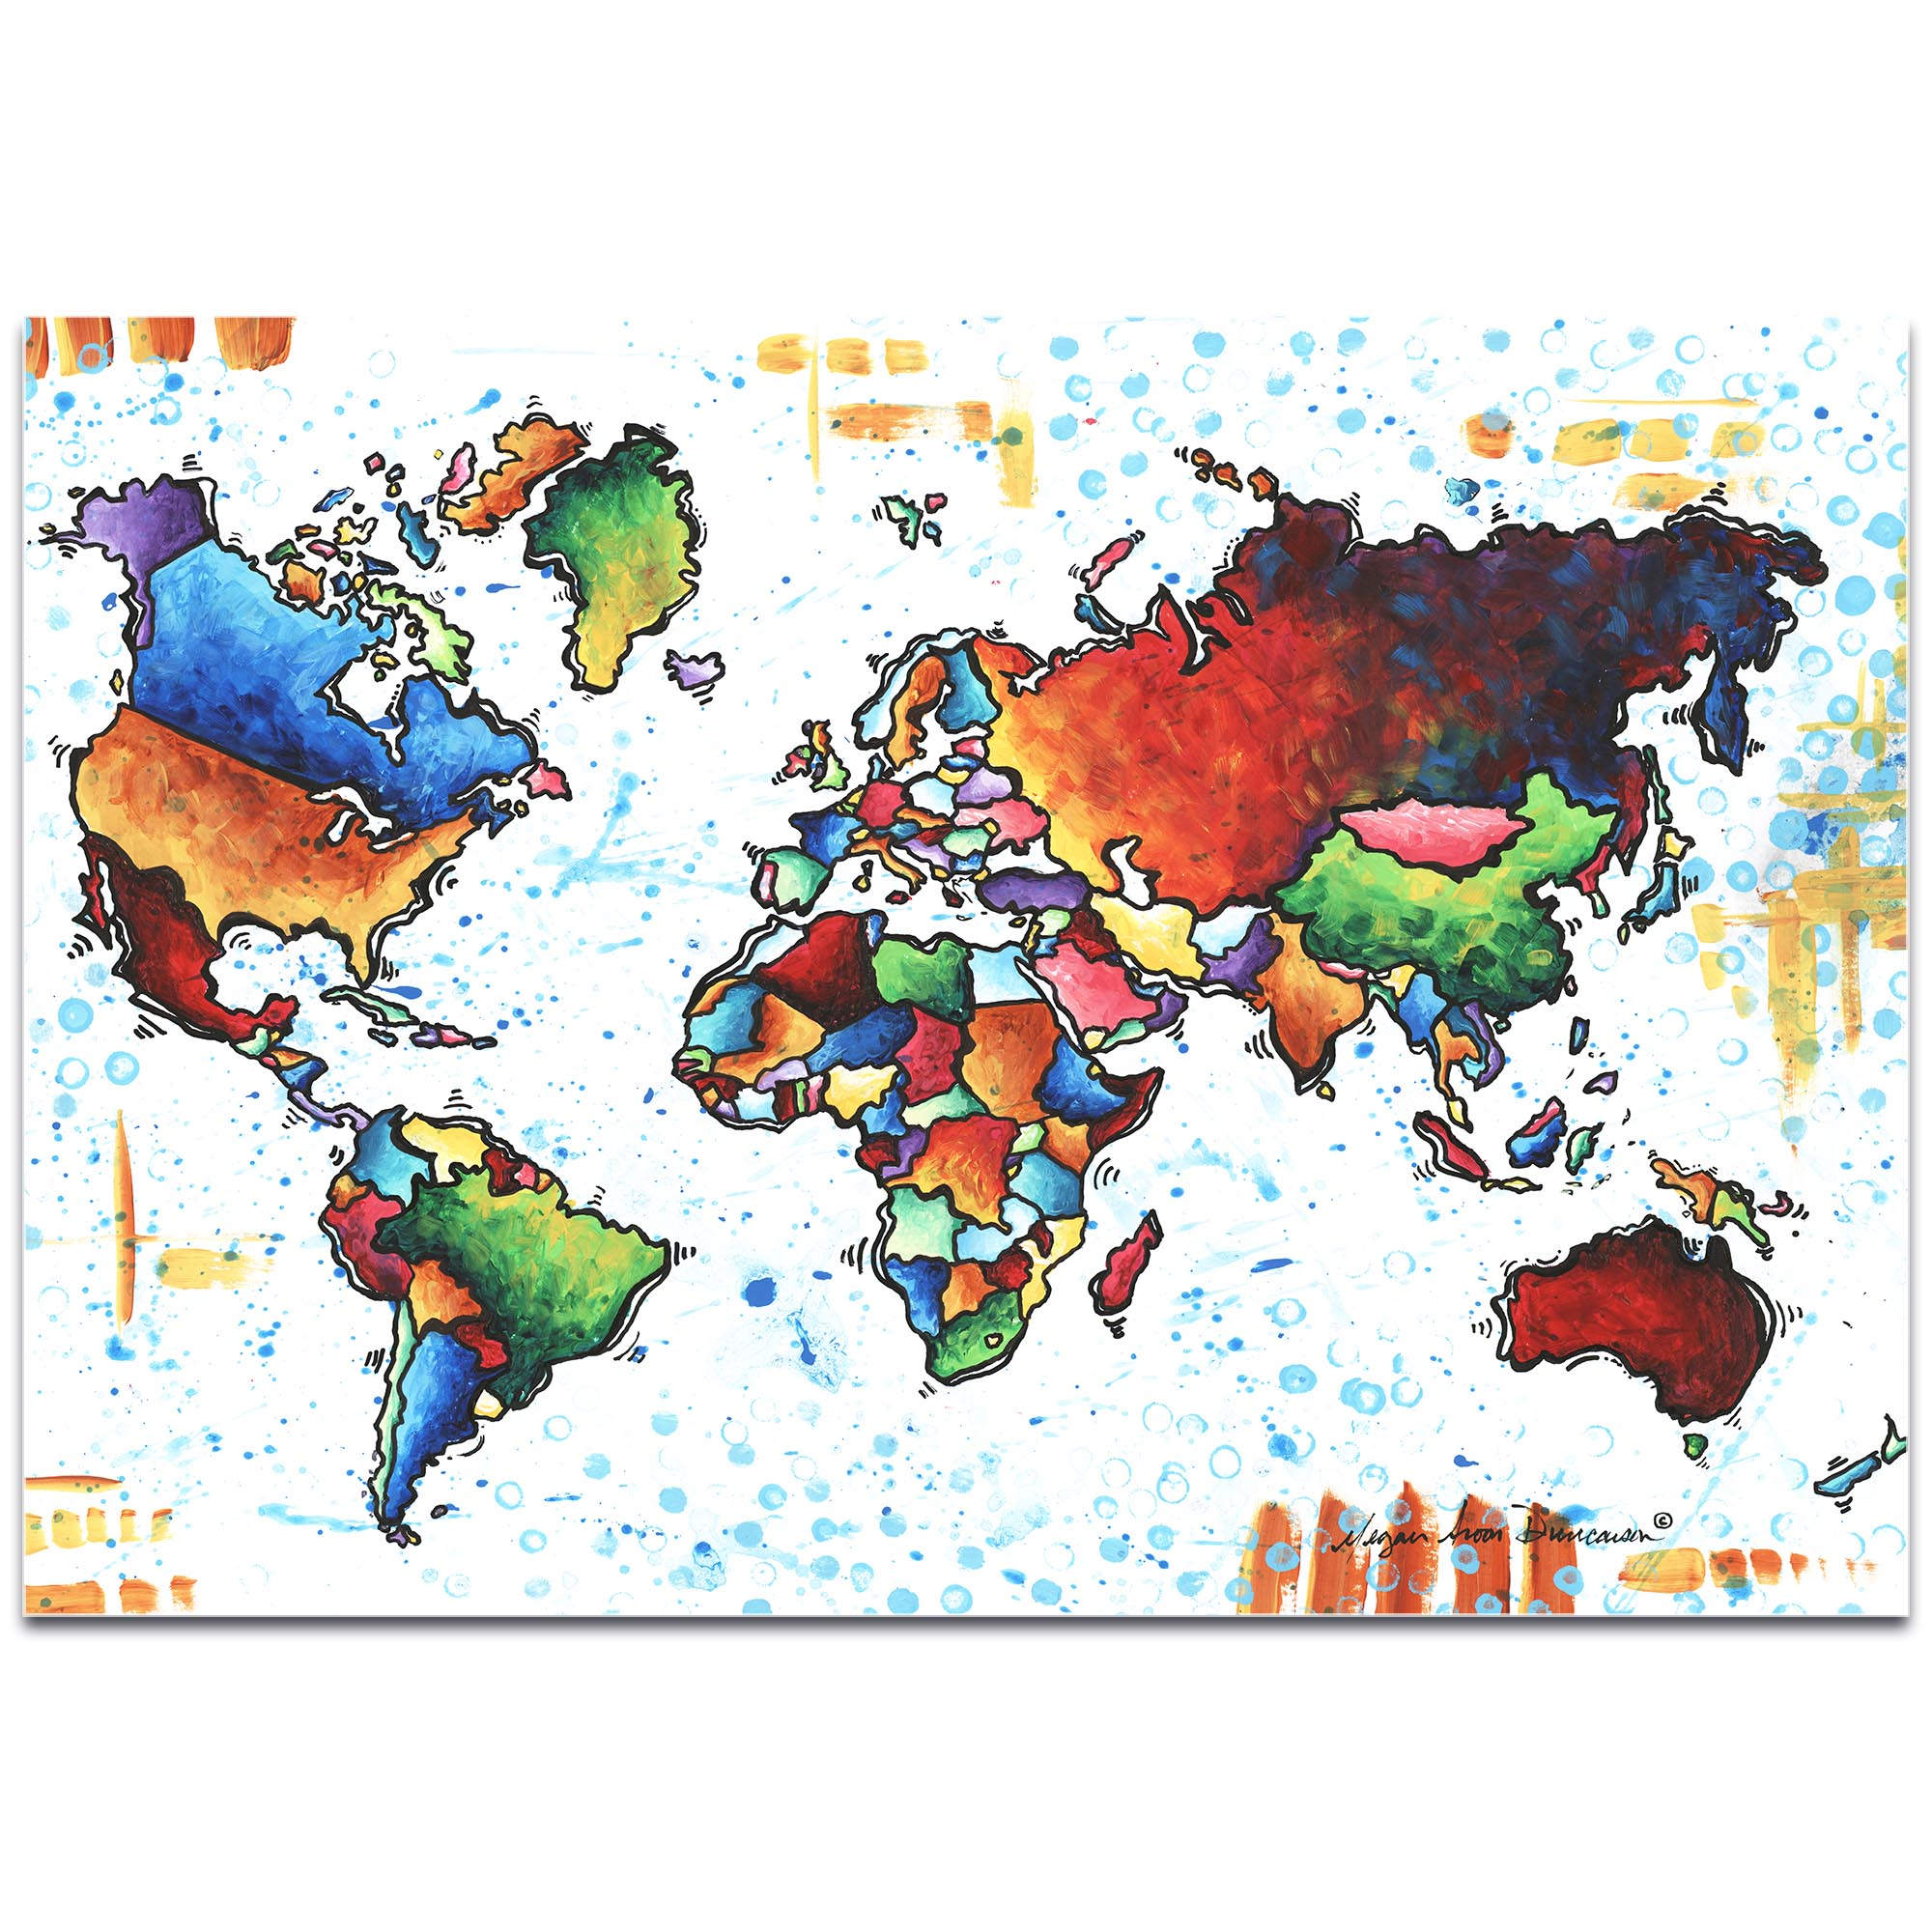 Rainbow Map 'A World of Diversity' - Modern Map Art on Metal or Acrylic - Image 2